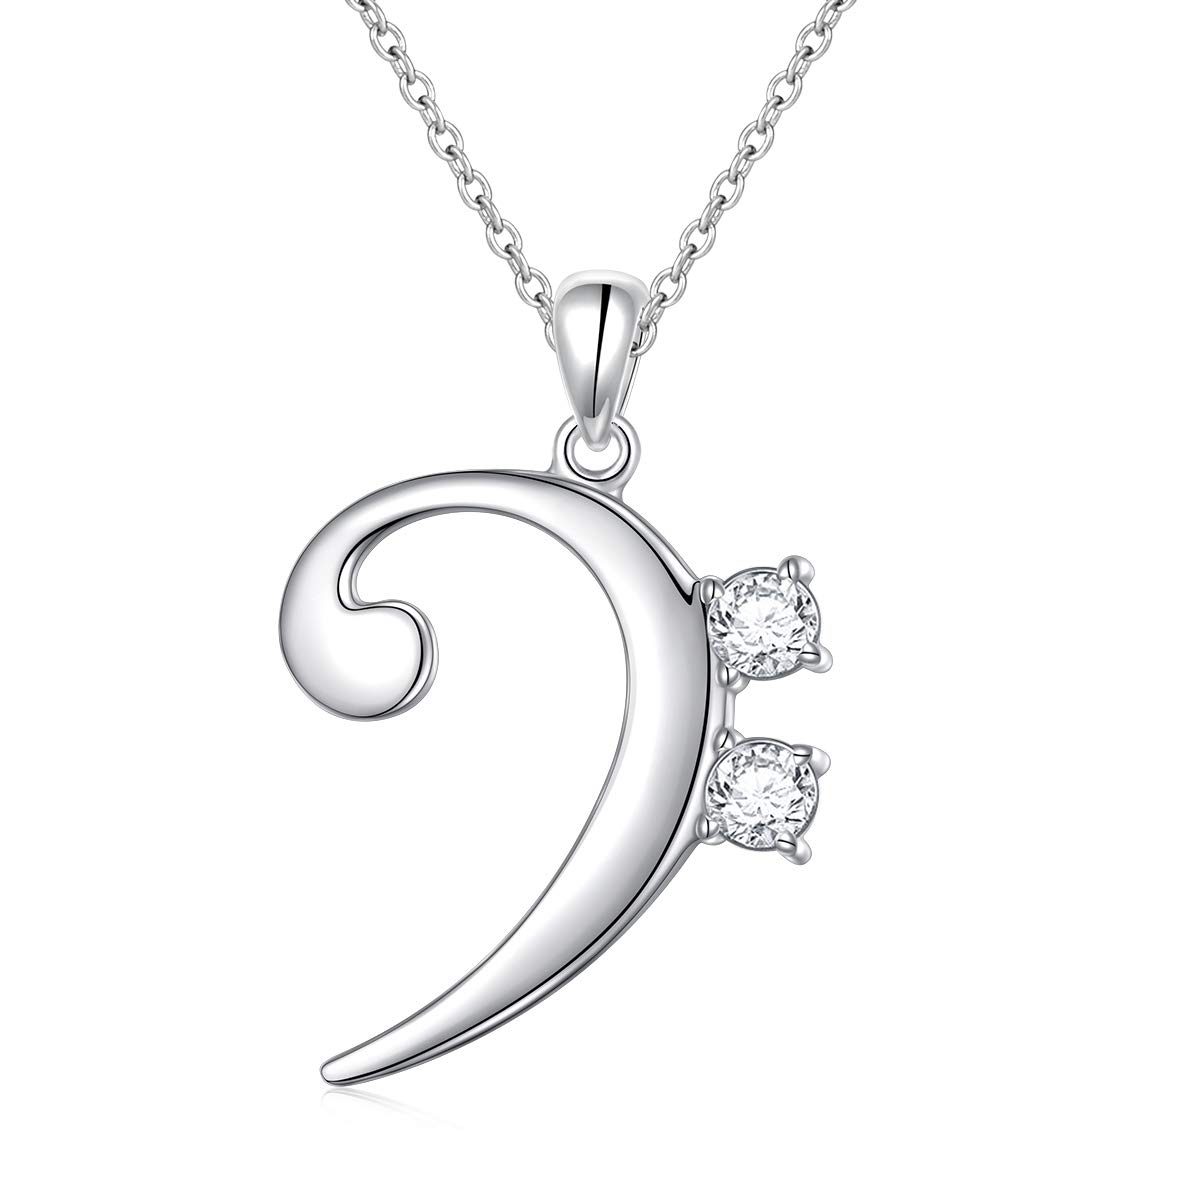 18 Inch 925 Sterling Silver Jewelry for Women Girls Musical Note Necklace Pendant